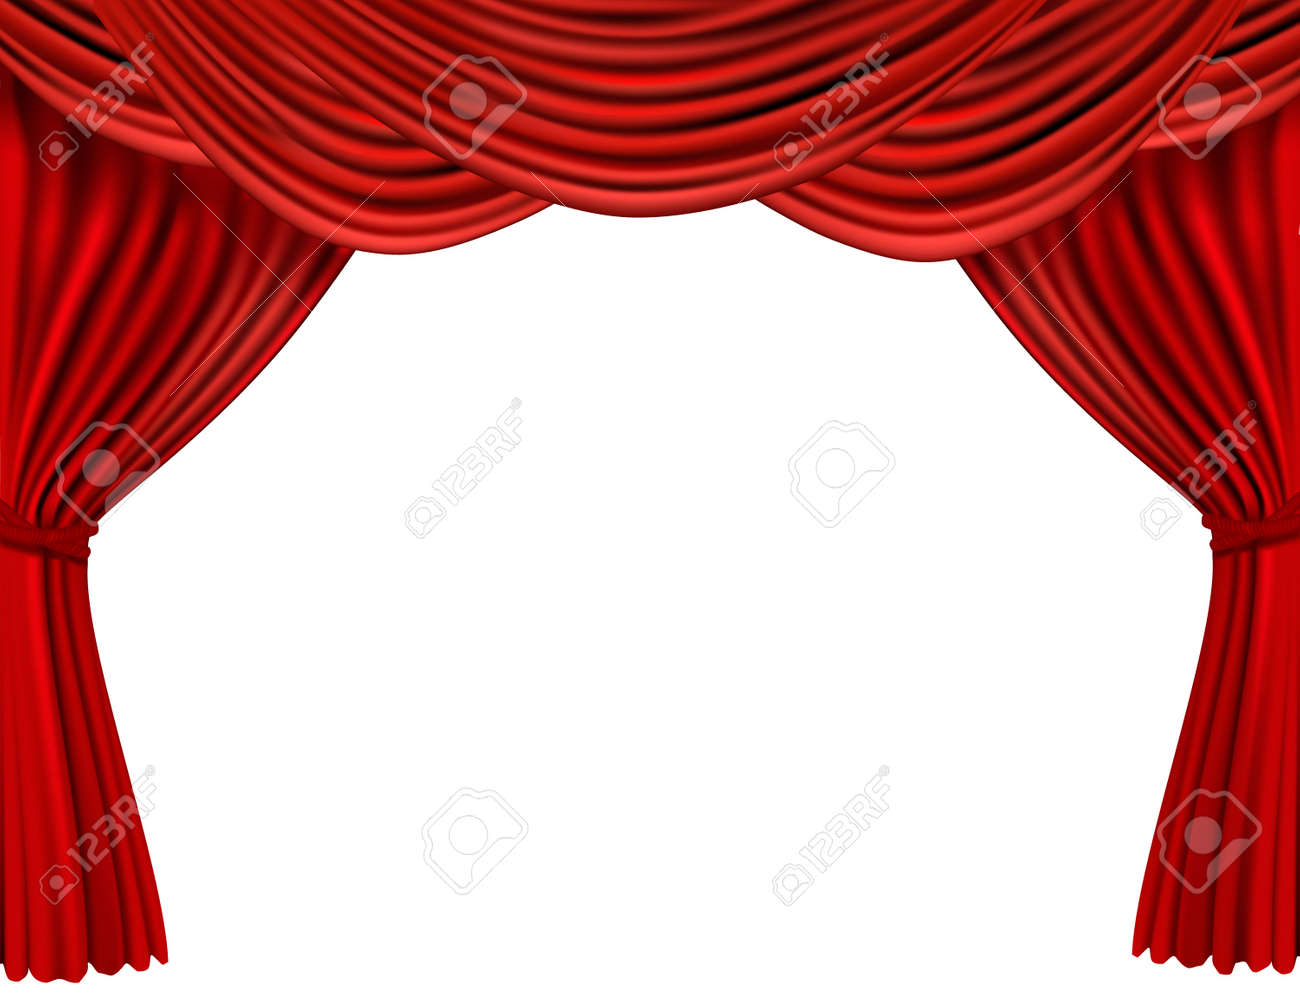 background with red velvet curtain stock vector